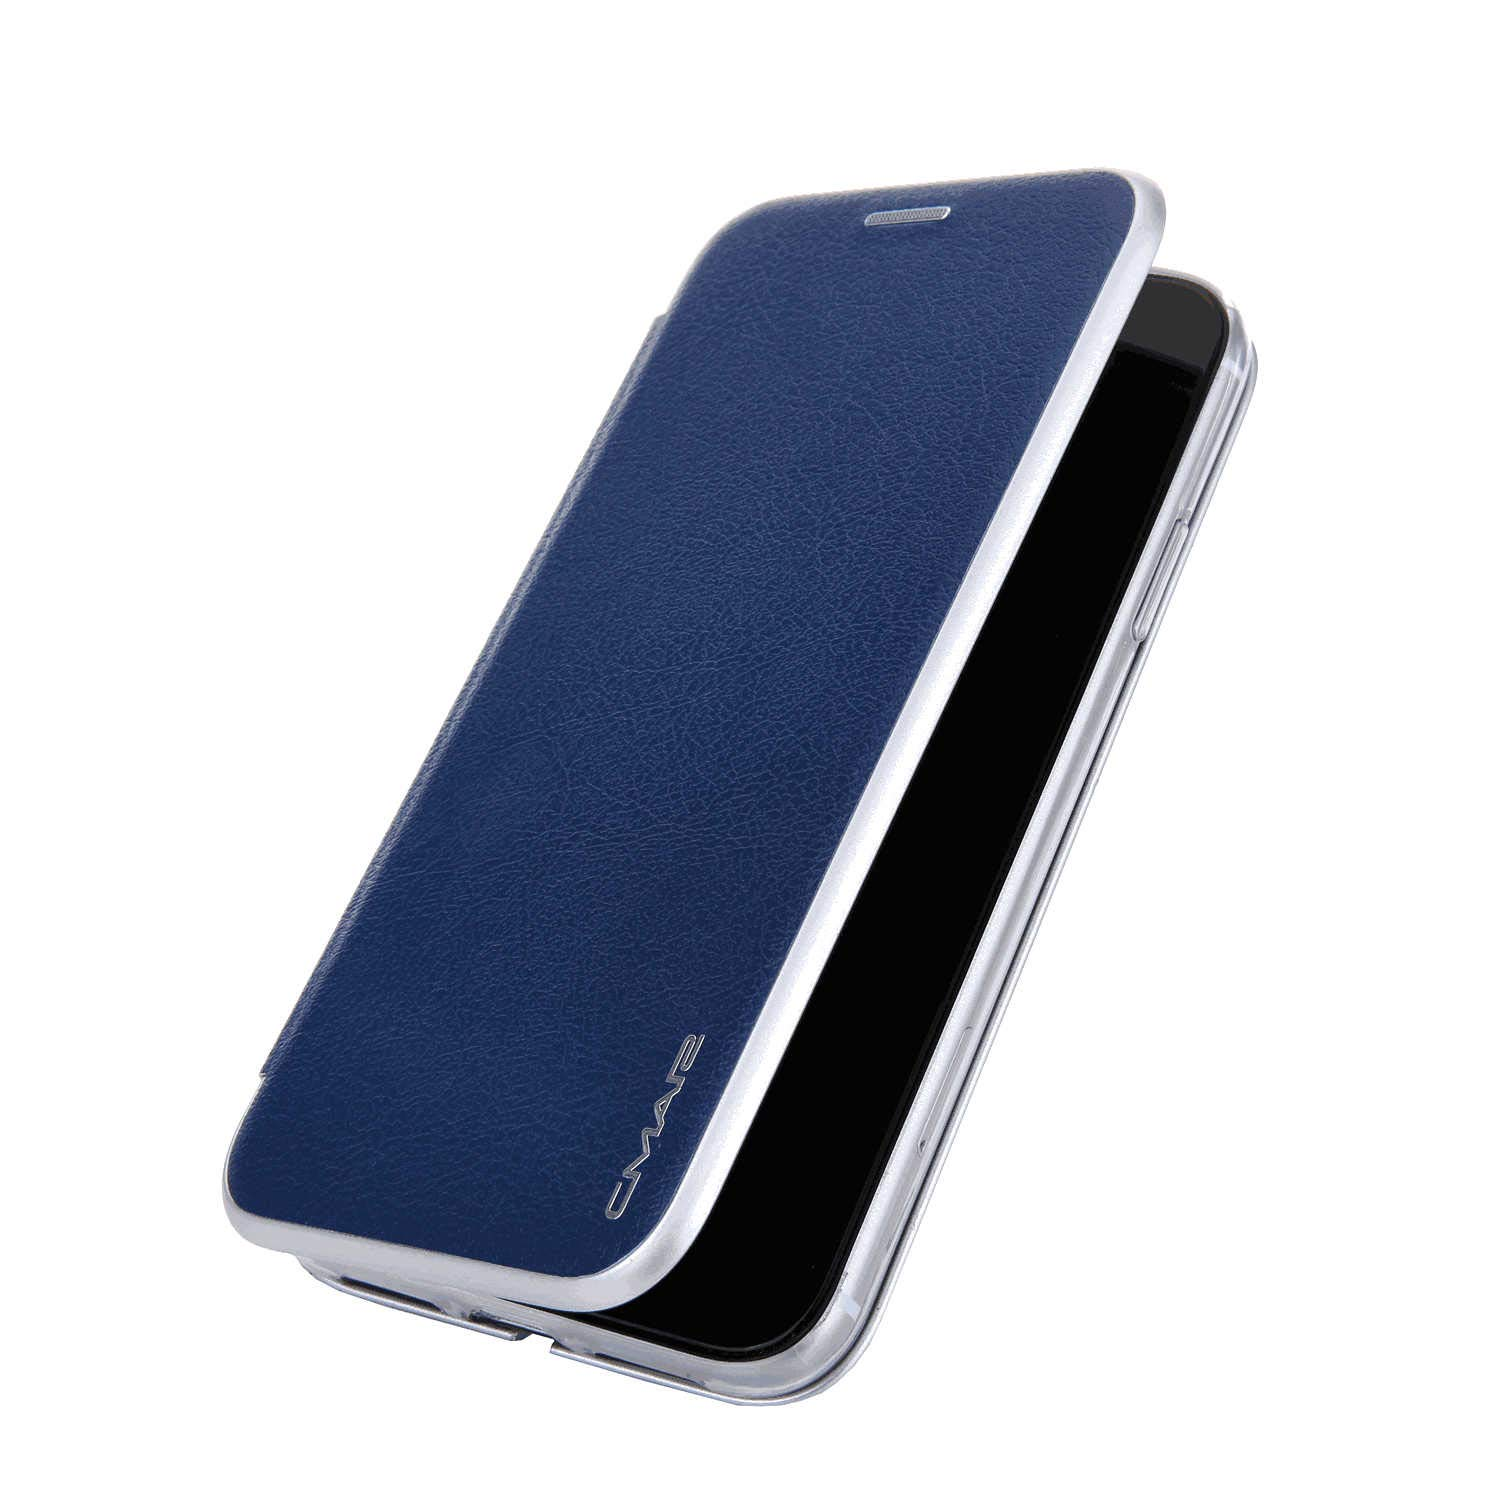 Positive Cover Compatible with Samsung Galaxy S10 5G Blue PU Leather Wallet Flip Case for Samsung Galaxy S10 5G